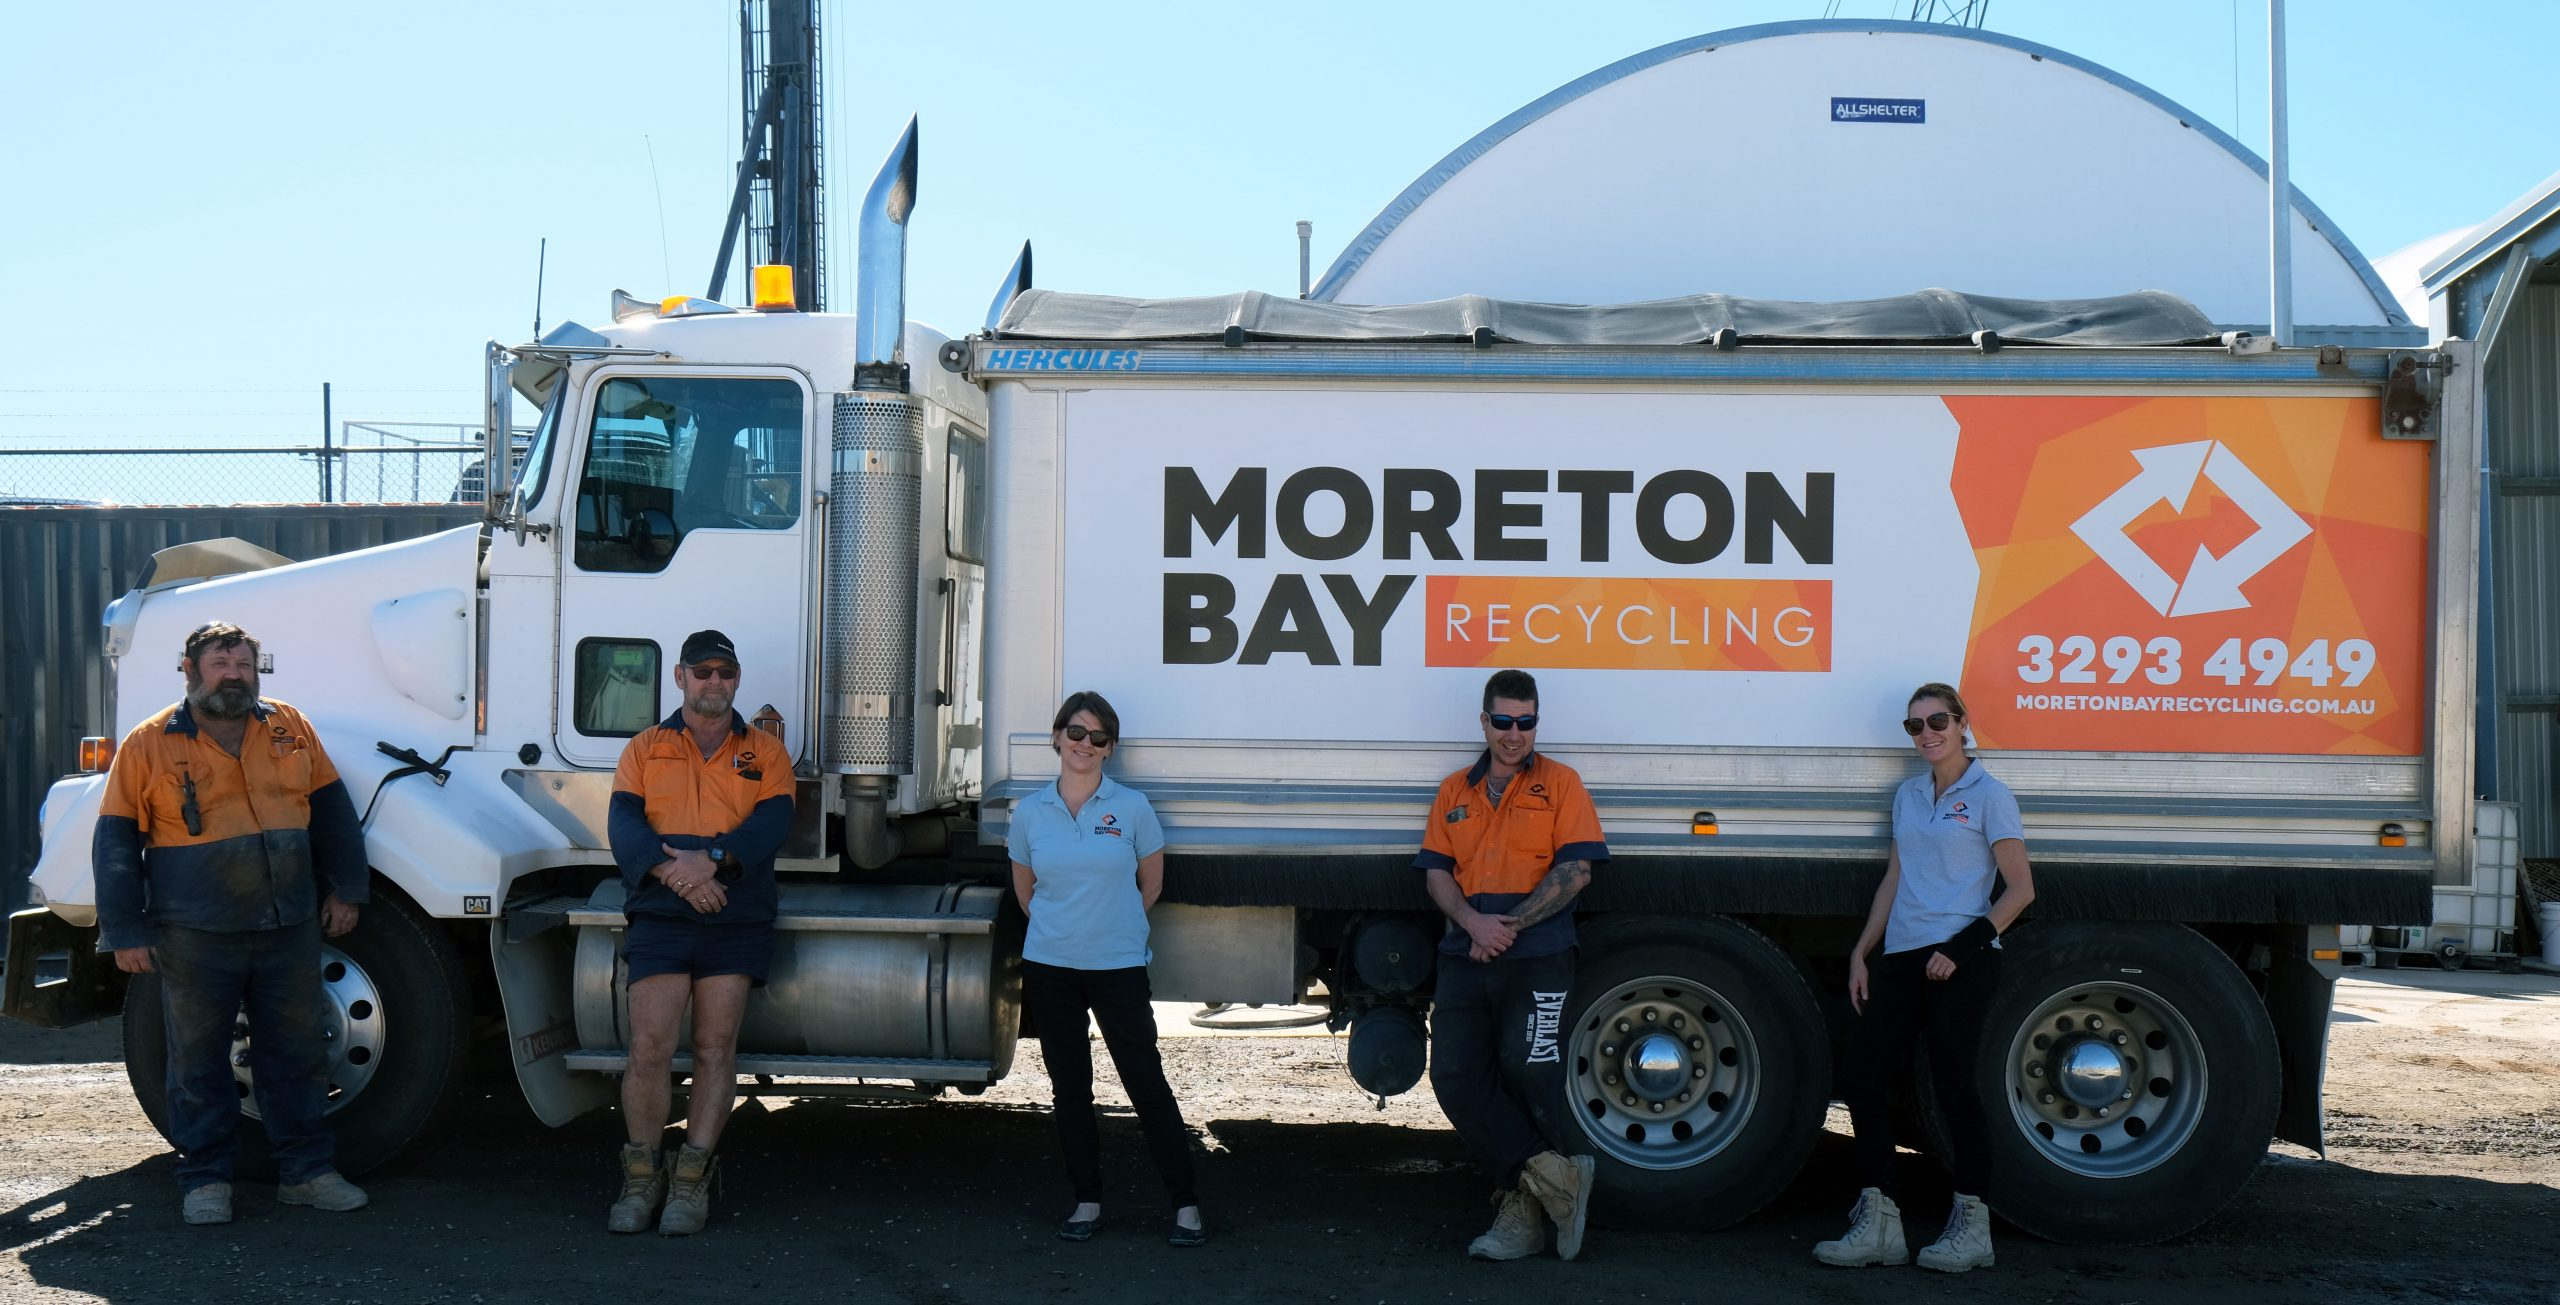 Photo of the Moreton Bay Recycling team standing in front of a truck in the yard, while observing social distancing guidelines.